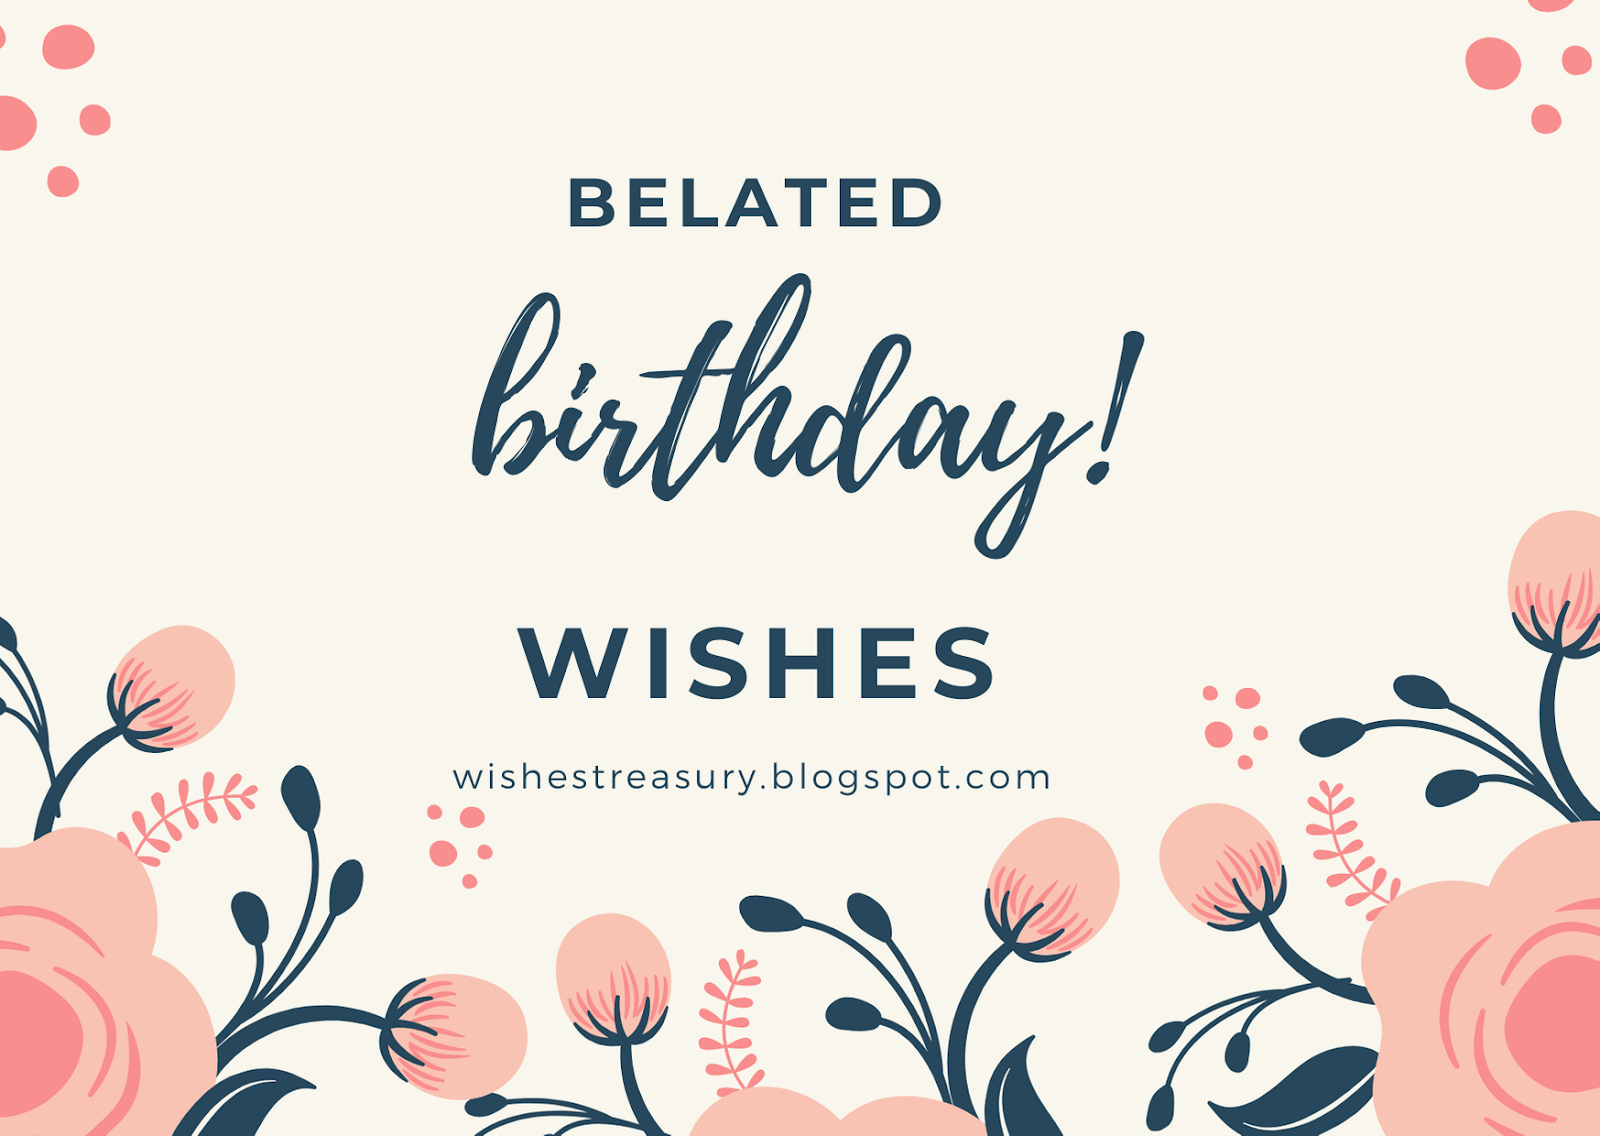 Belated Happy Birthday Wishes And Messages Wishes Treasury